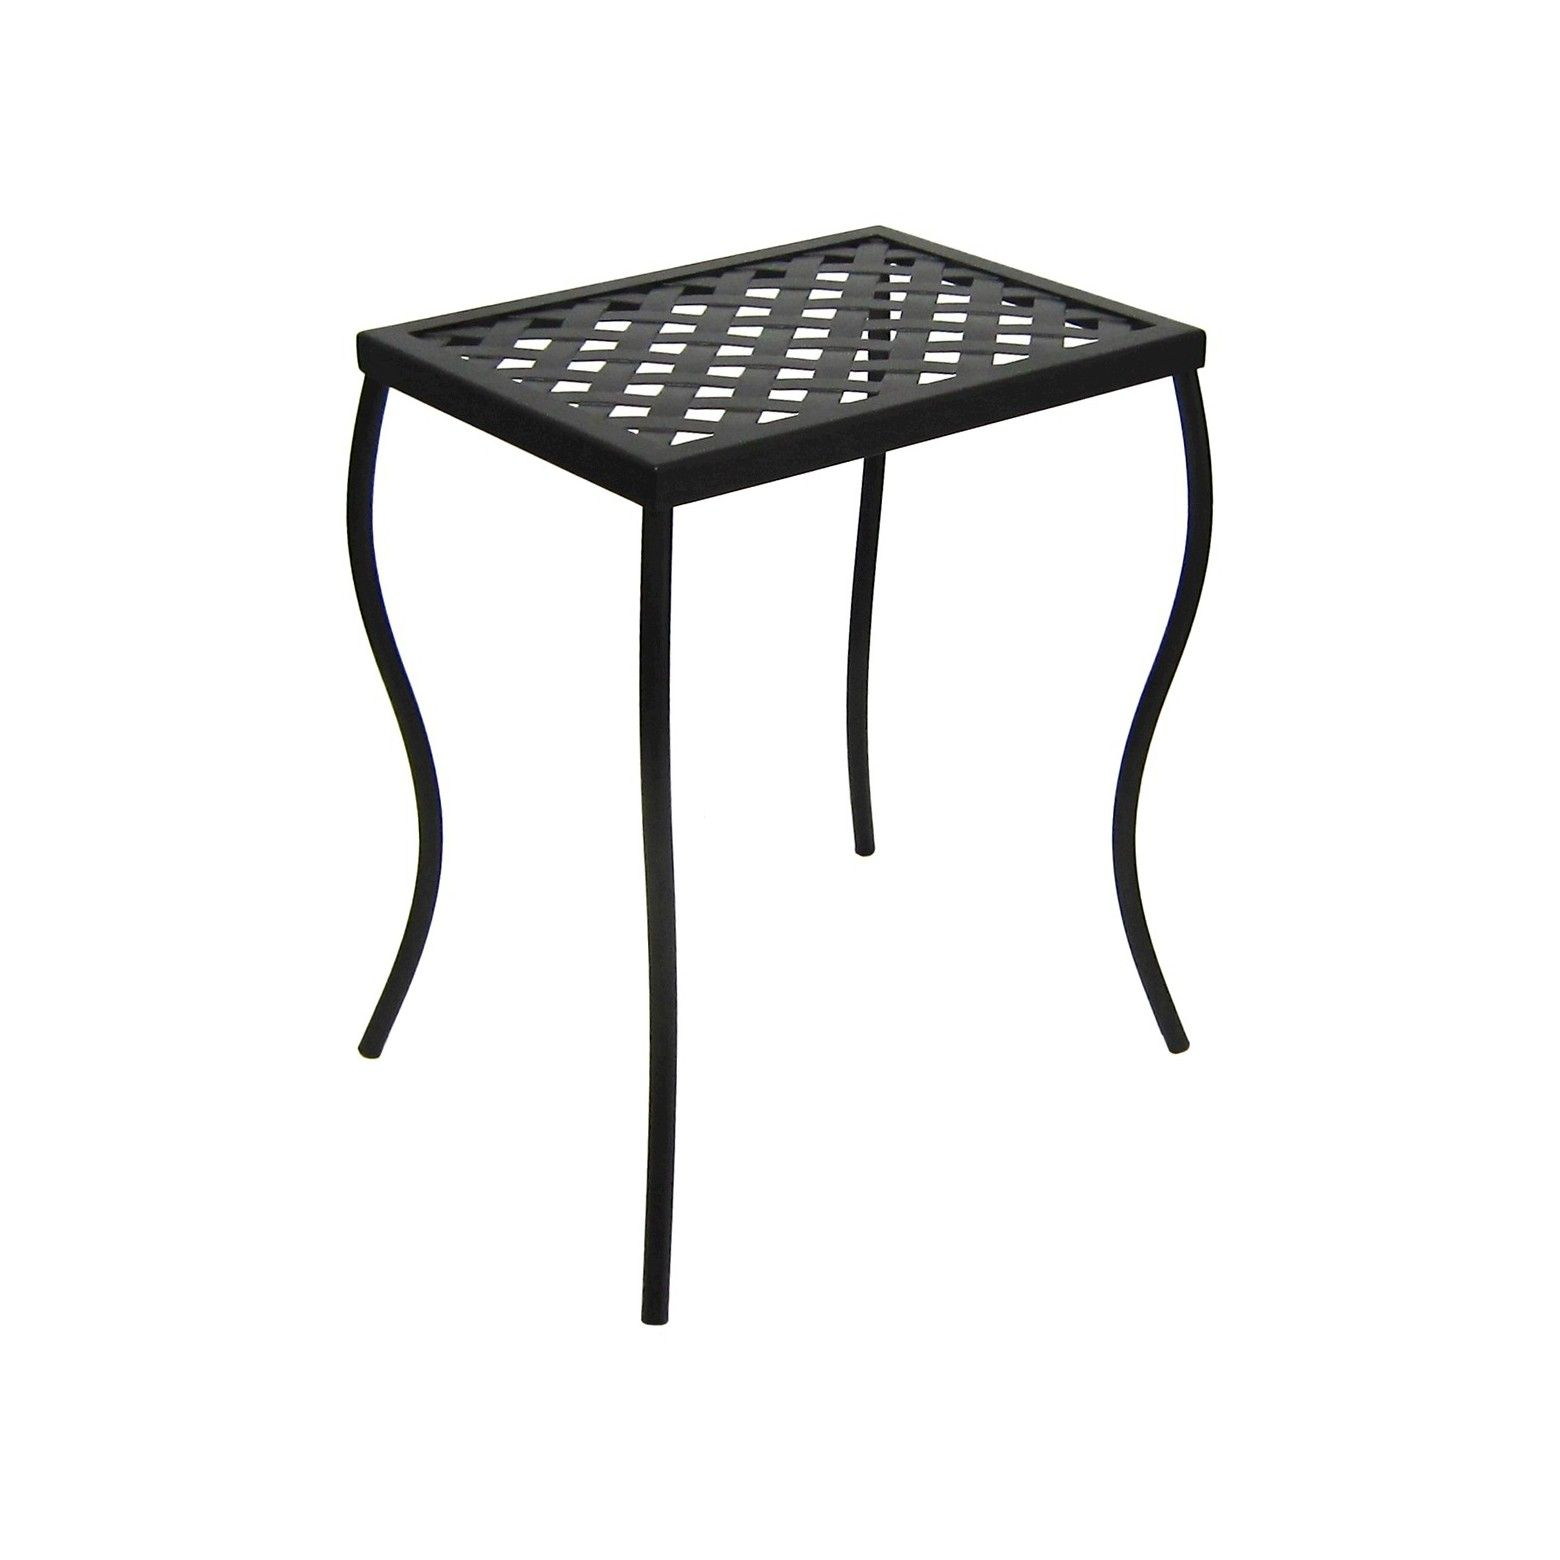 outdoor woven metal accent table threshold black seasons dress inch high tables iron drum ethan allen lighting office wall clock diy end ideas frog rain buffet sideboard pair